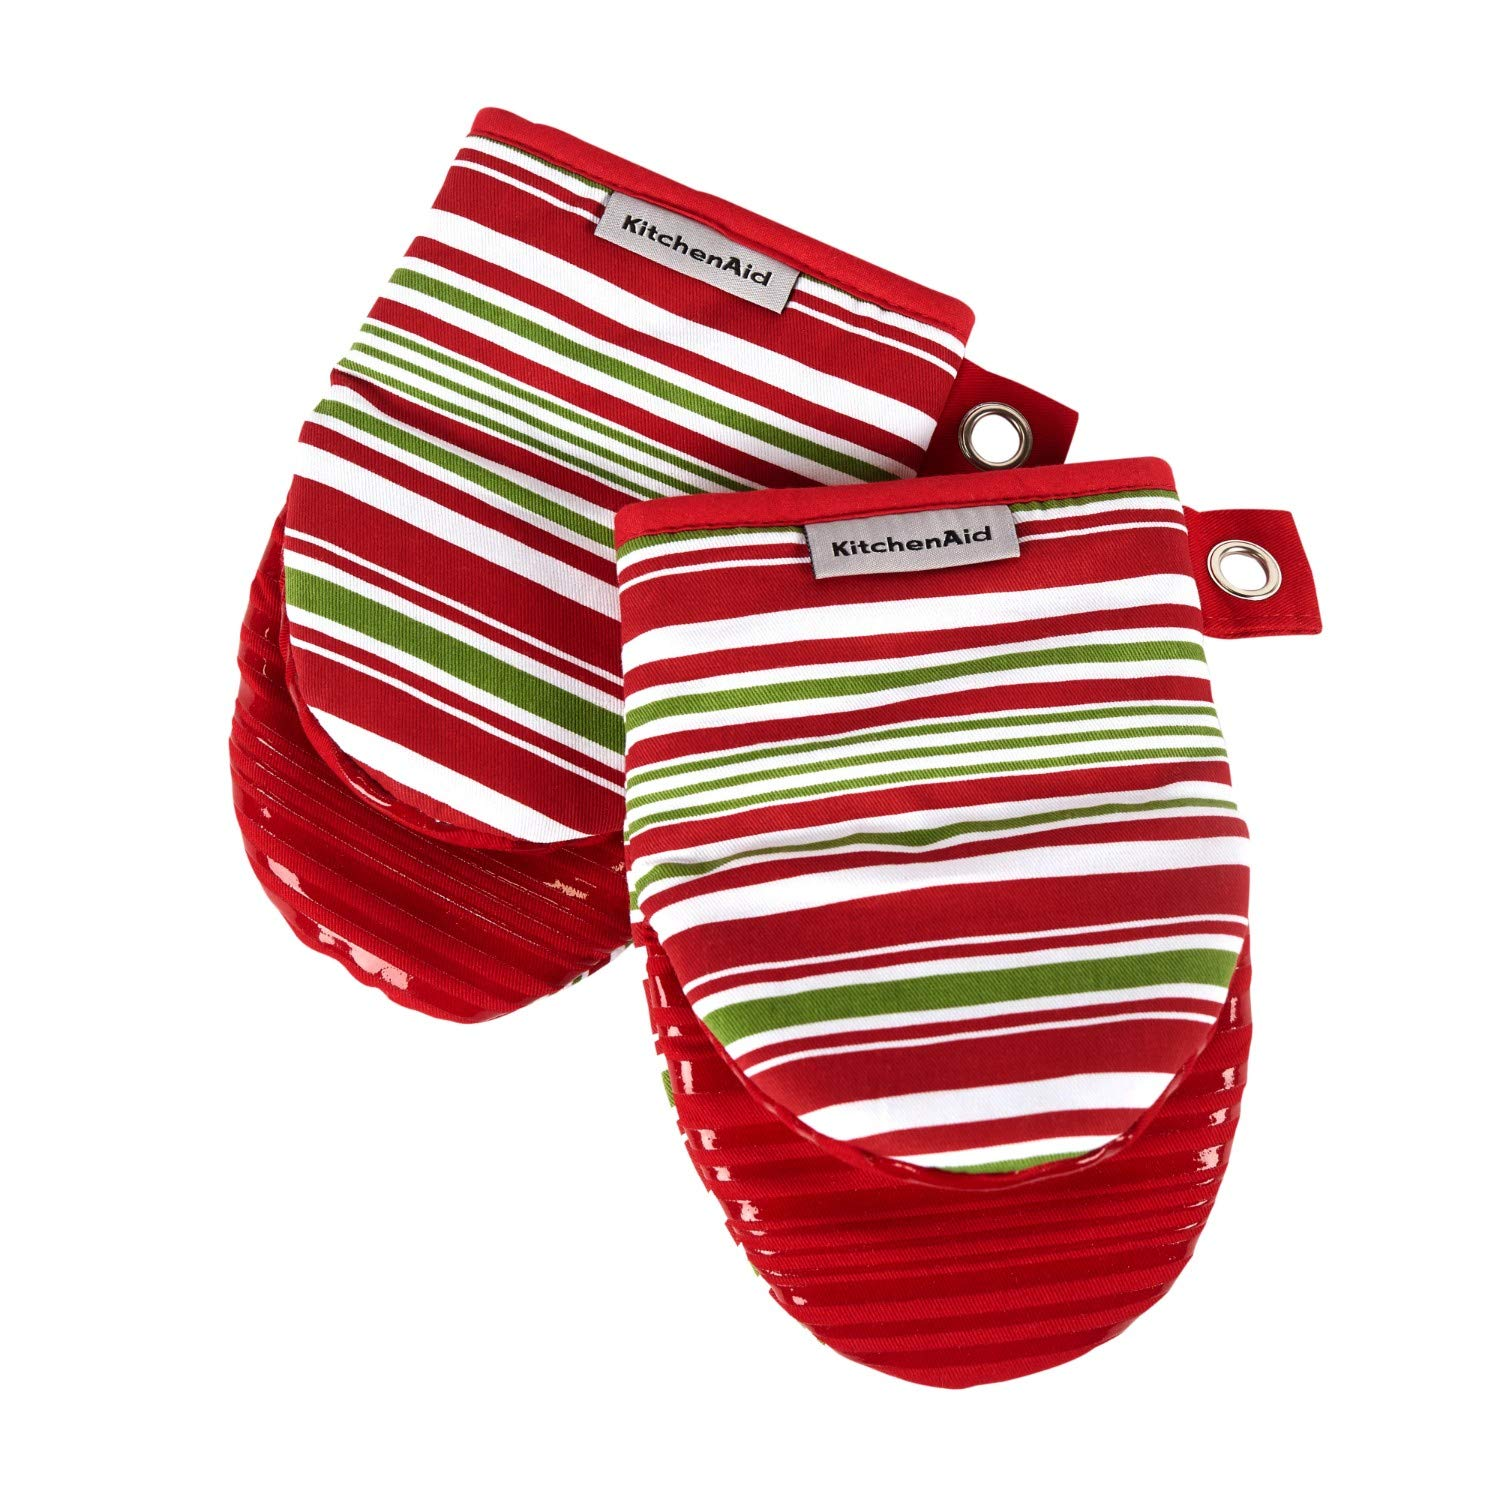 KitchenAid Mini Oven Mitt Red, Green, White